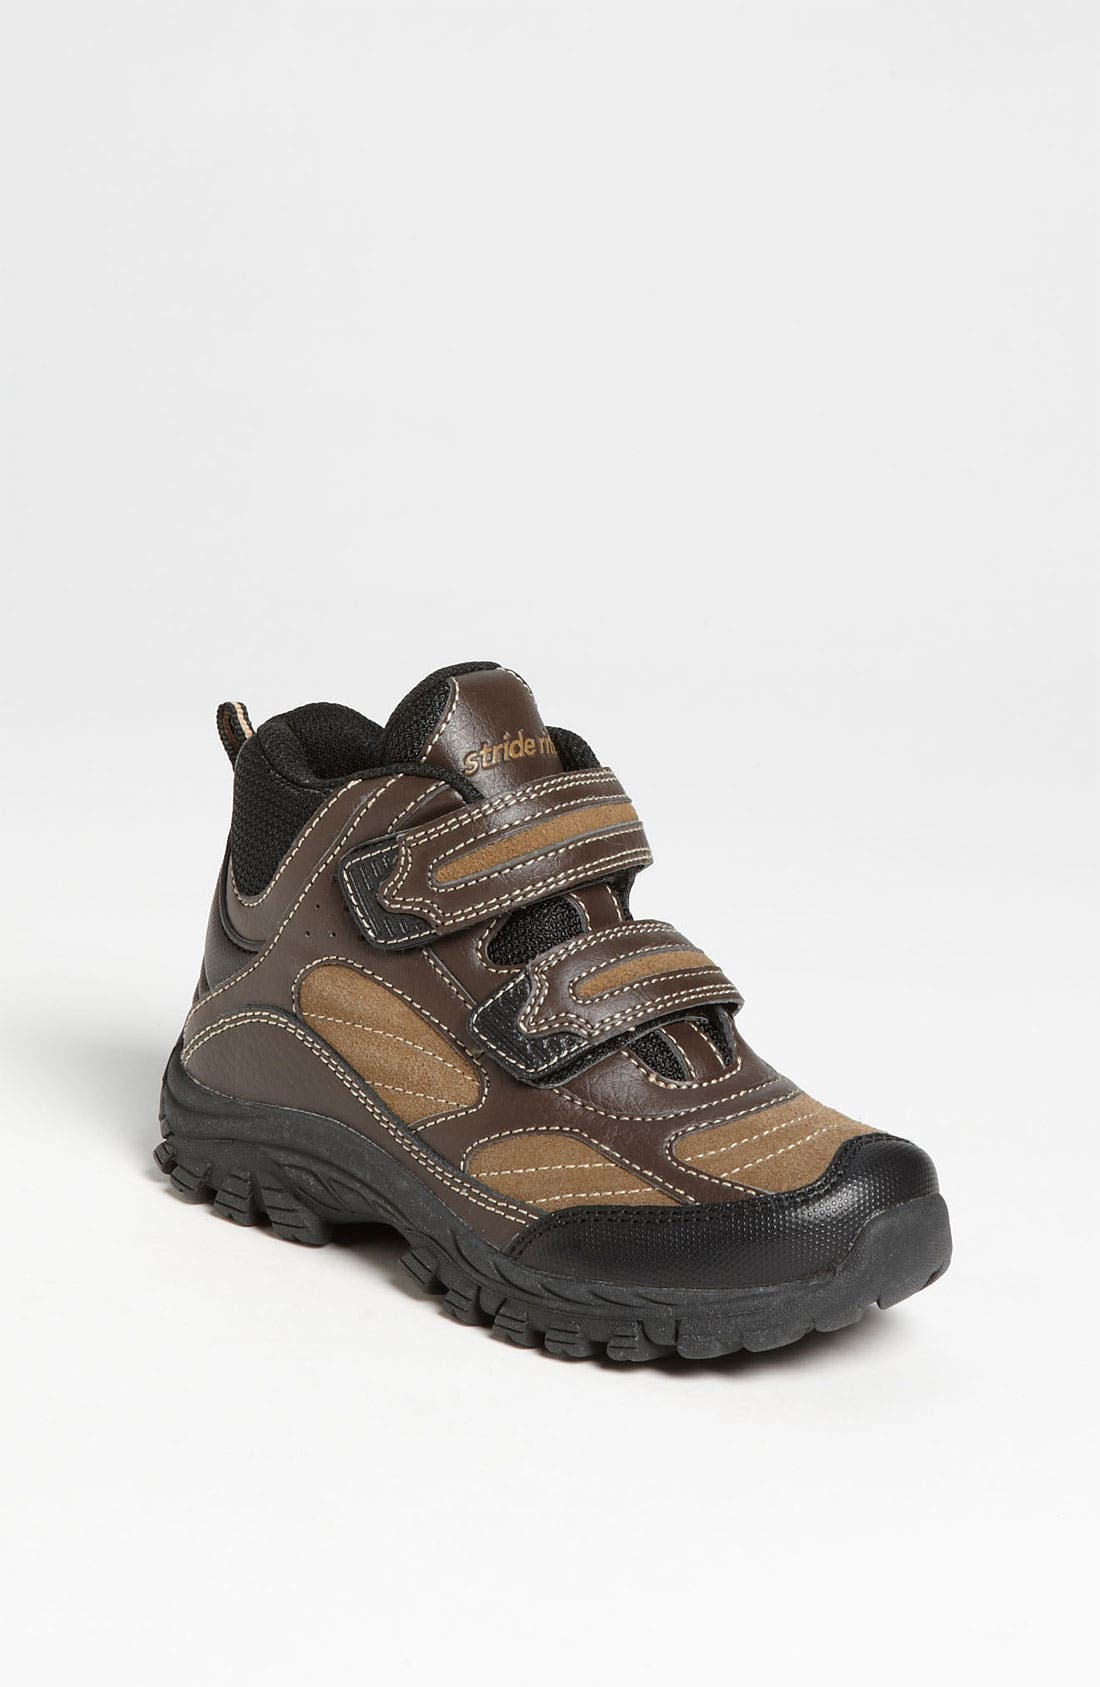 Main Image - Stride Rite 'Ritchie' Boot (Walker, Toddler & Little Kid)